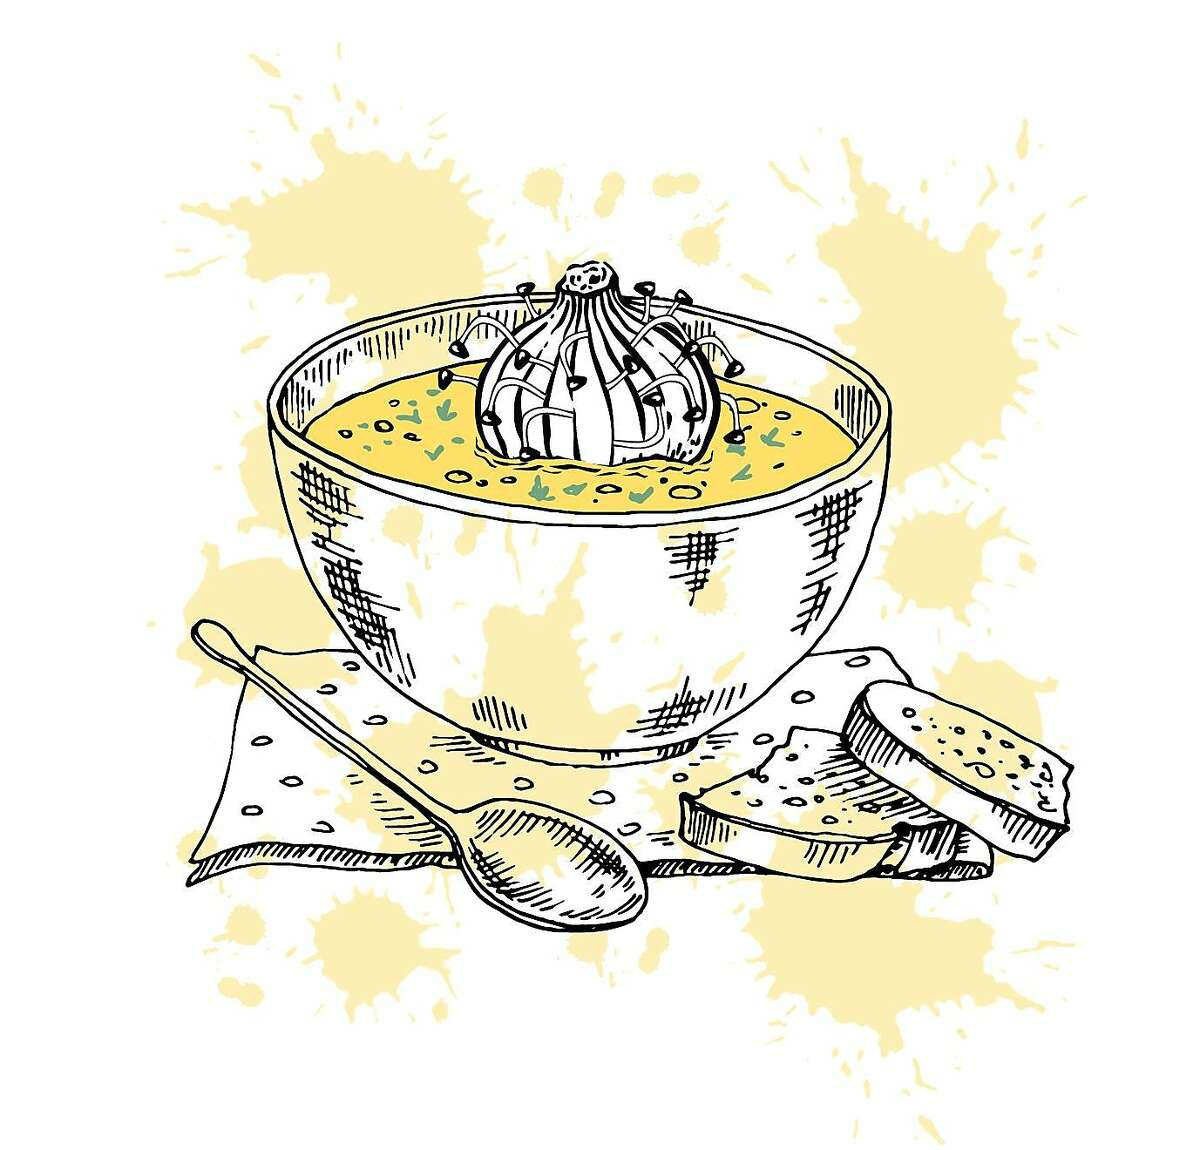 """Illustration for Daniel Handler's short fiction piece """"Waiters."""" A dumpling with bean sprouts sits in soup."""